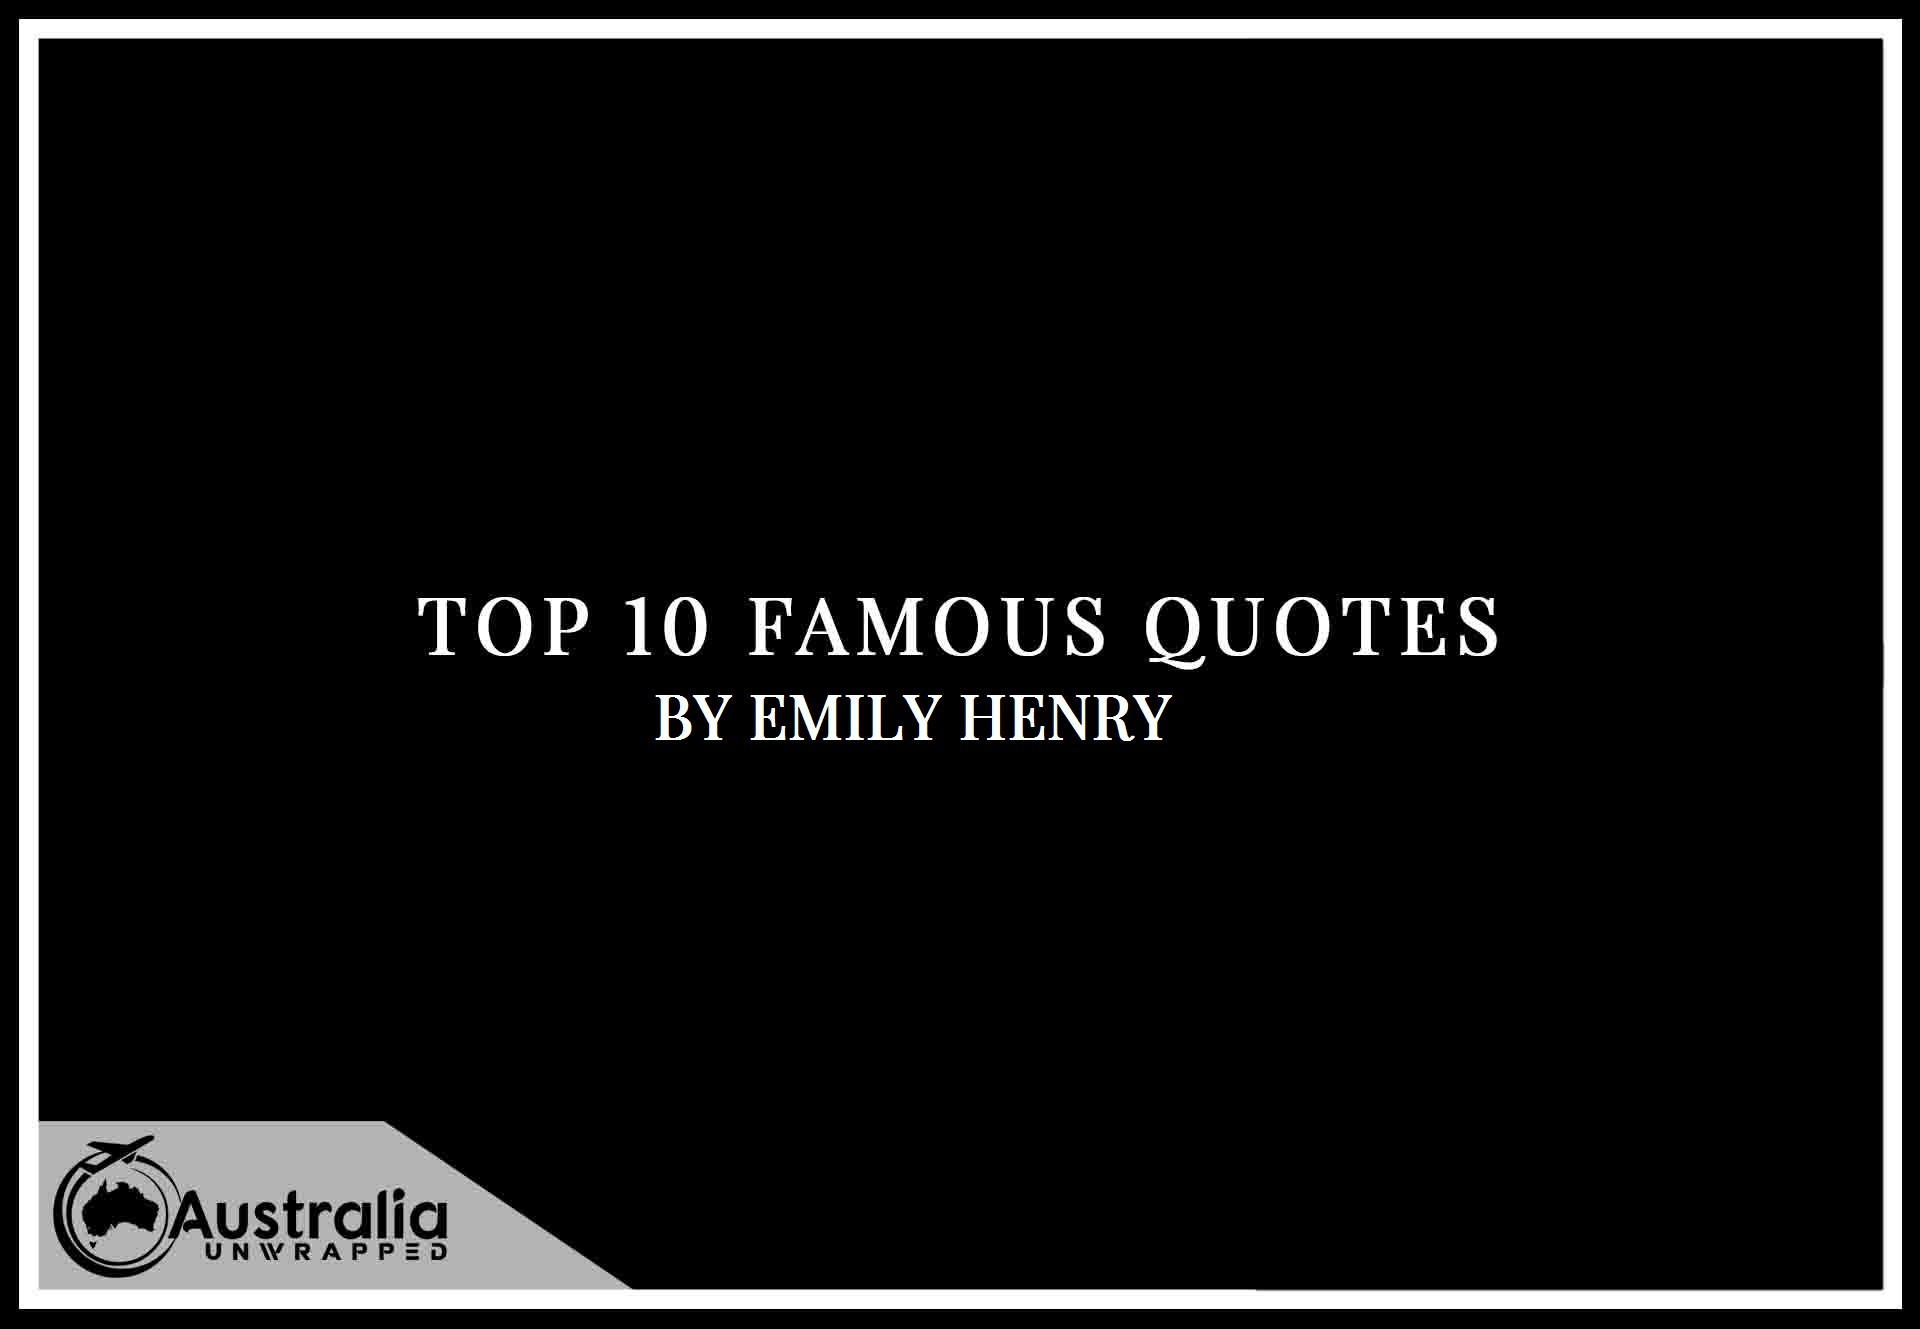 Emily Henry's Top 10 Popular and Famous Quotes